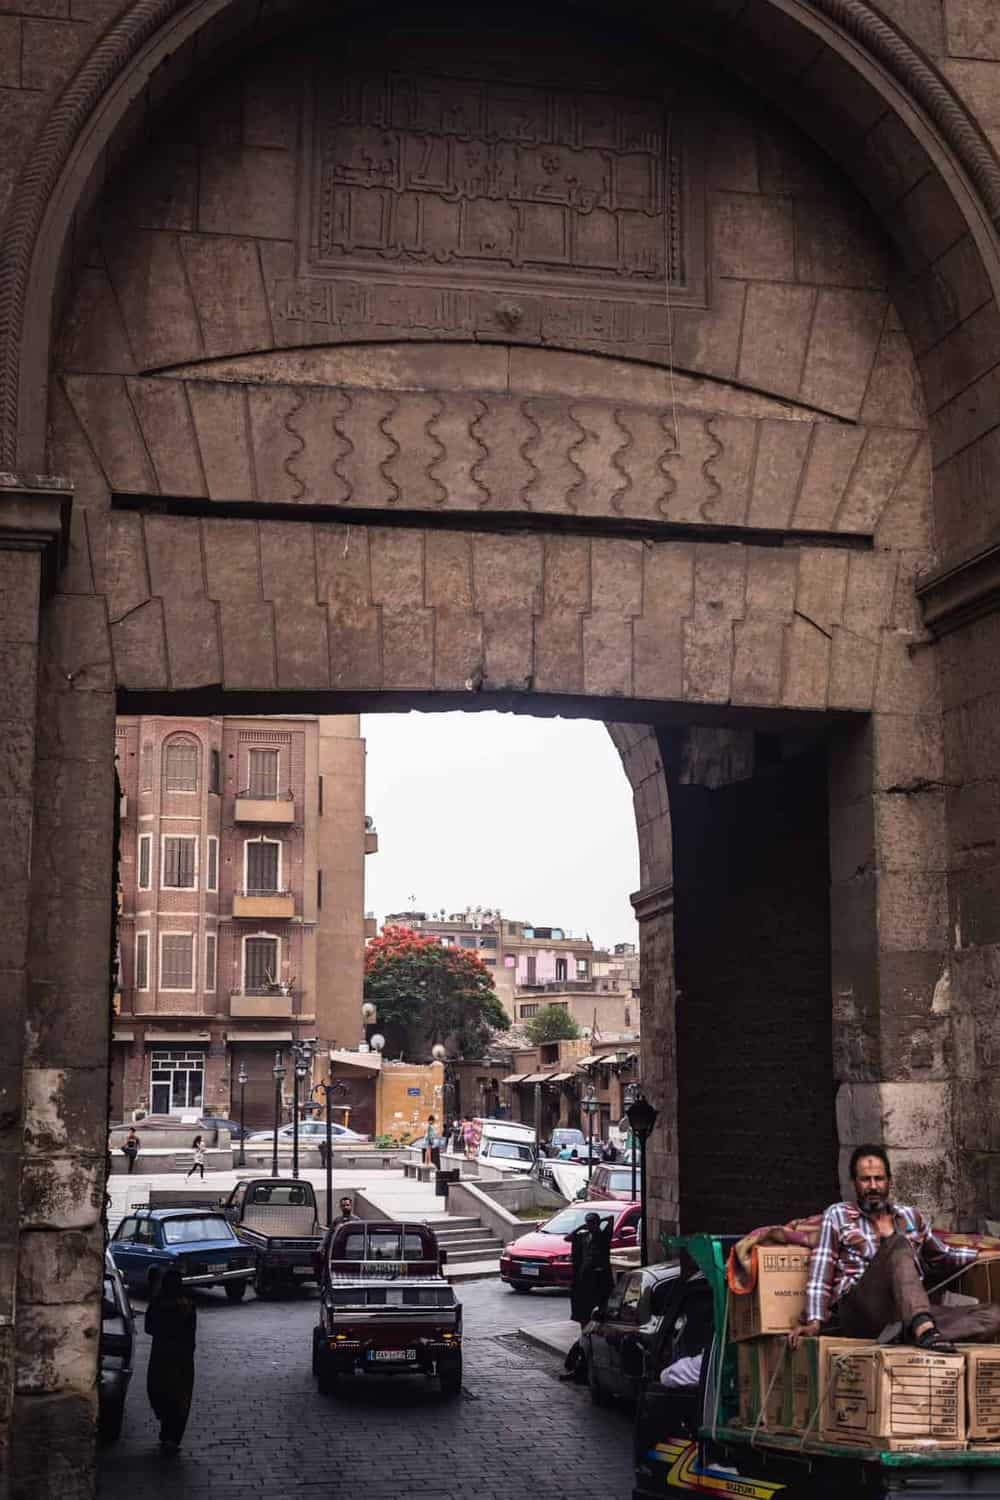 Arched entrance to Old Cairo.